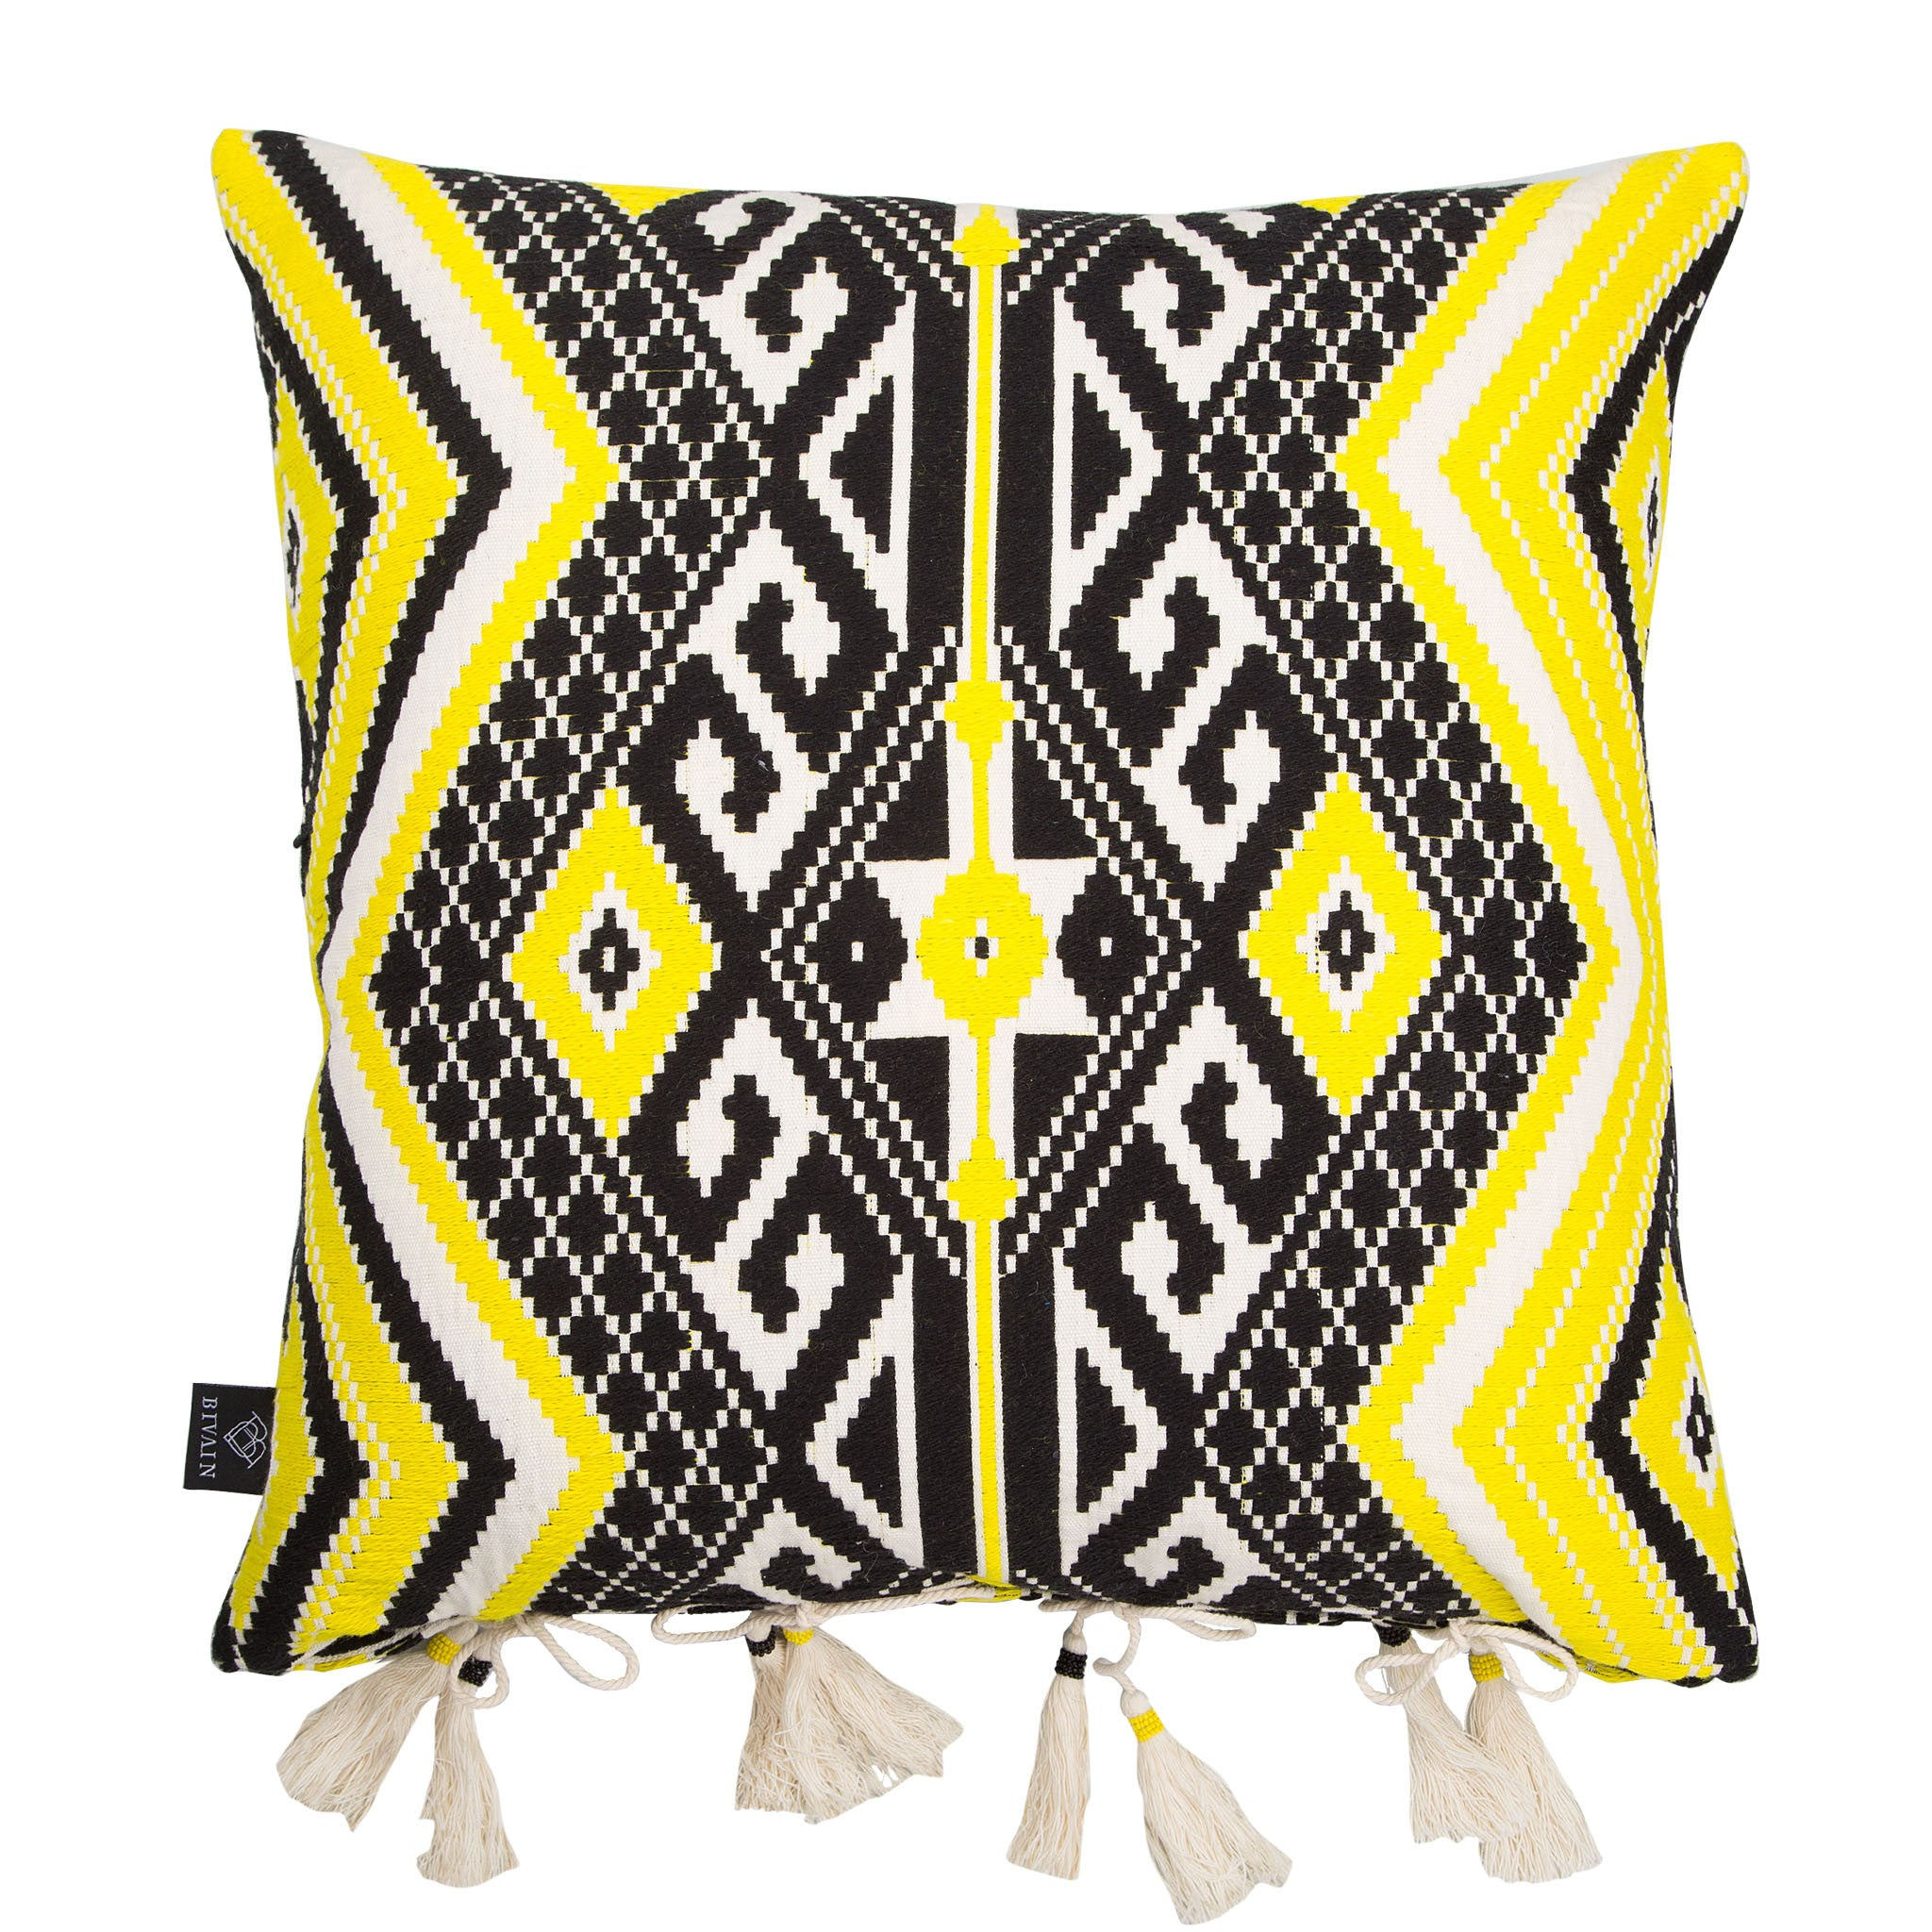 Bedouin-style yellow, black & white tasselled cotton cushion - Bivain - 1